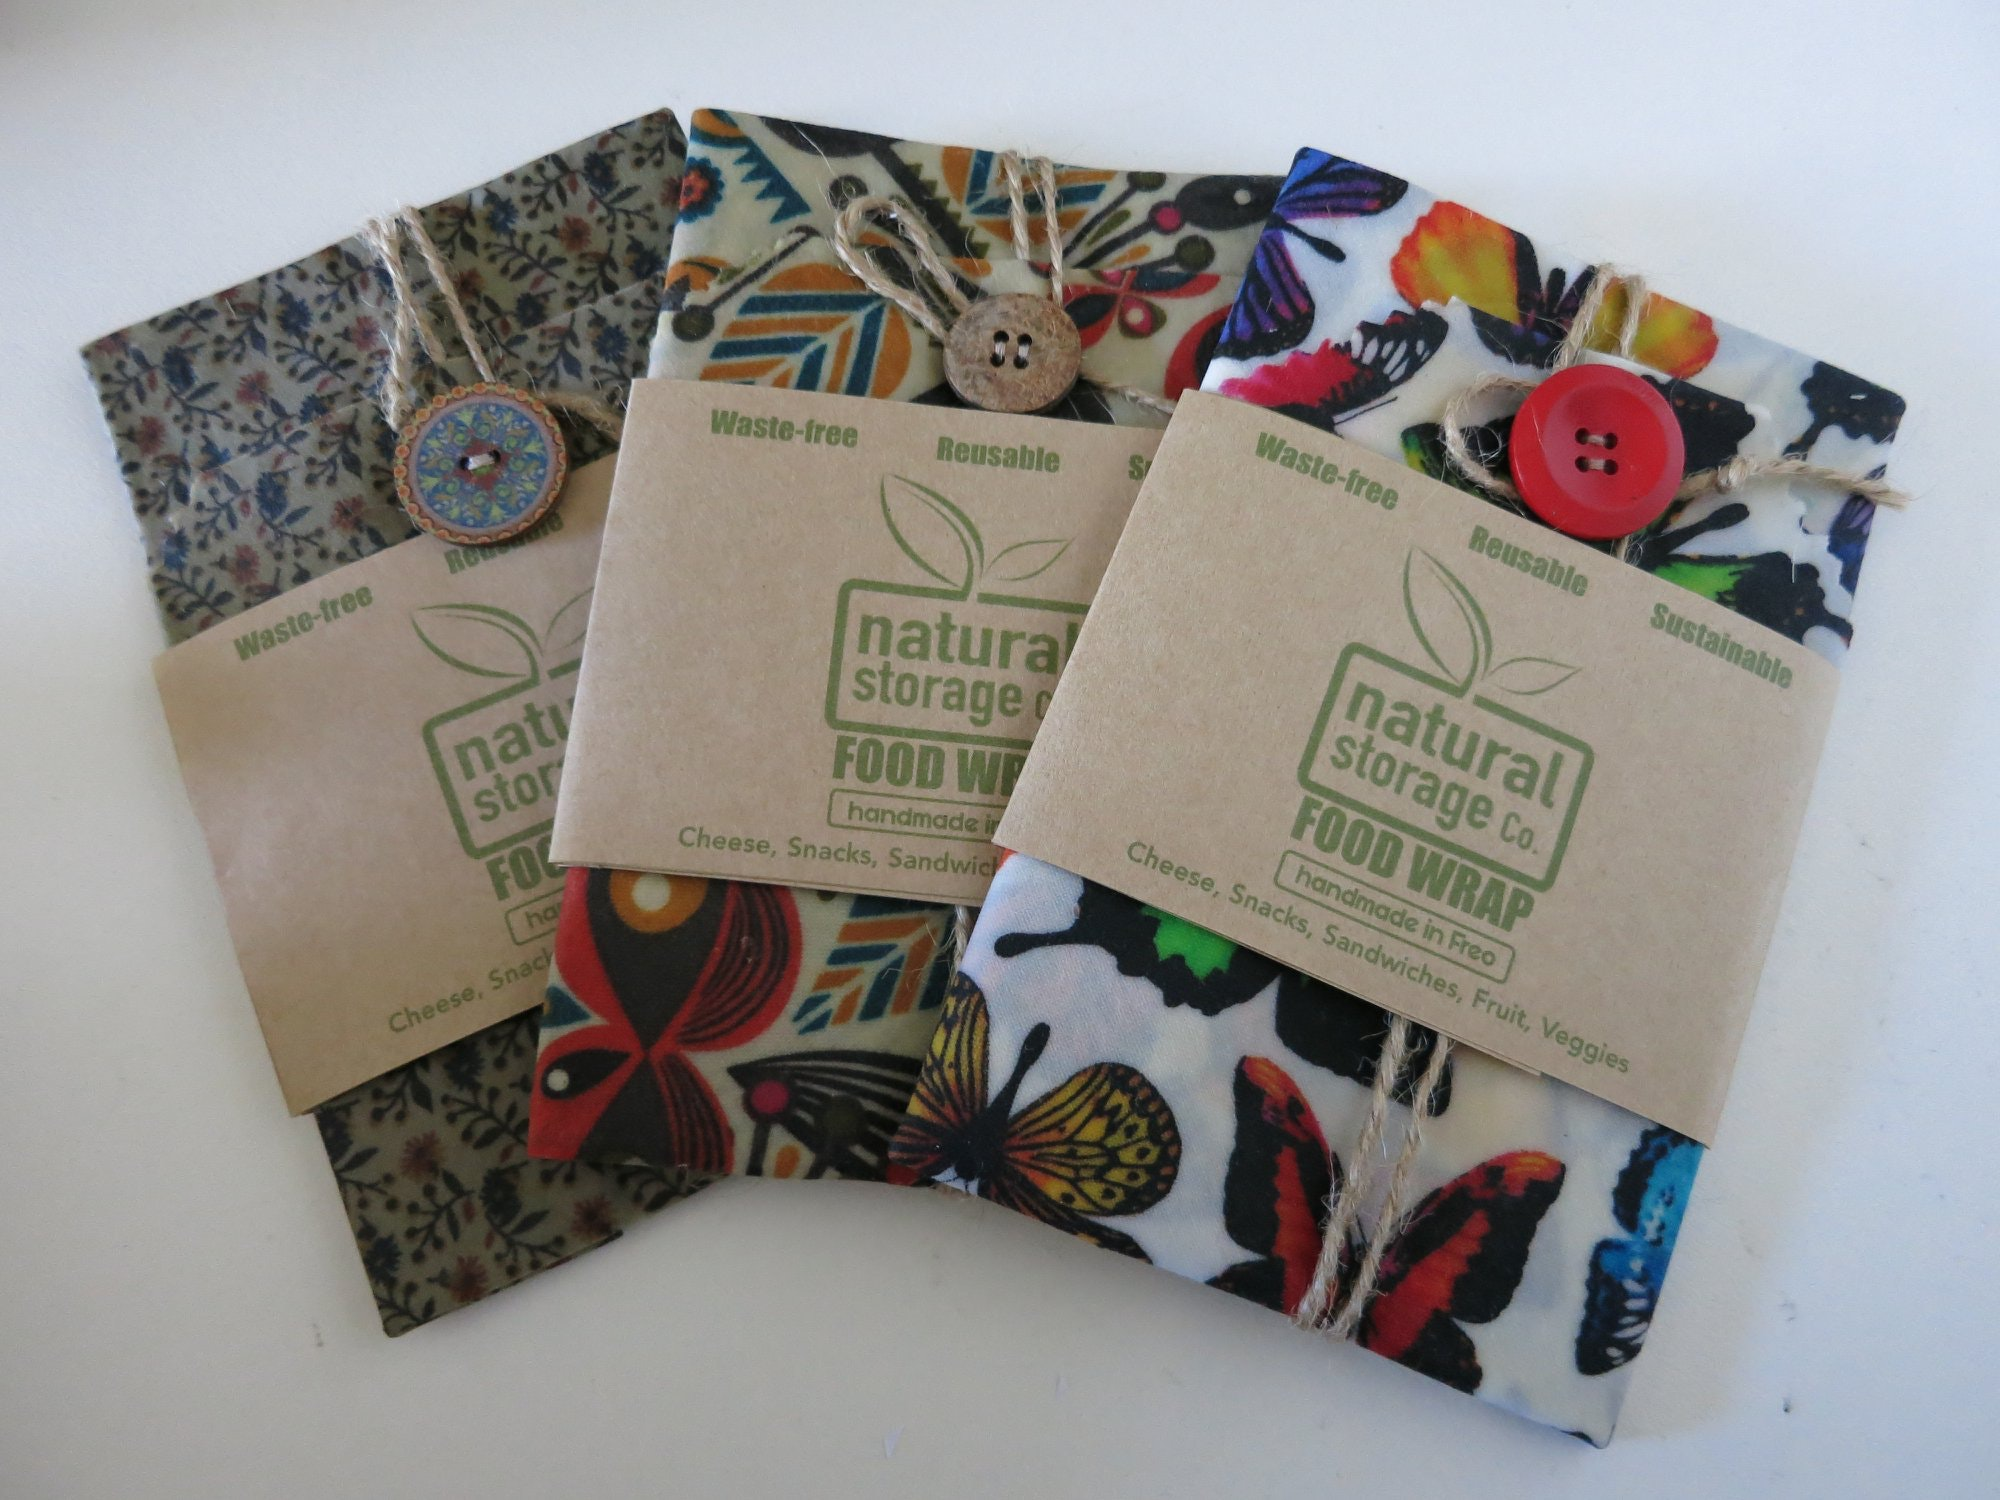 Natural Storage Co. beeswax wraps